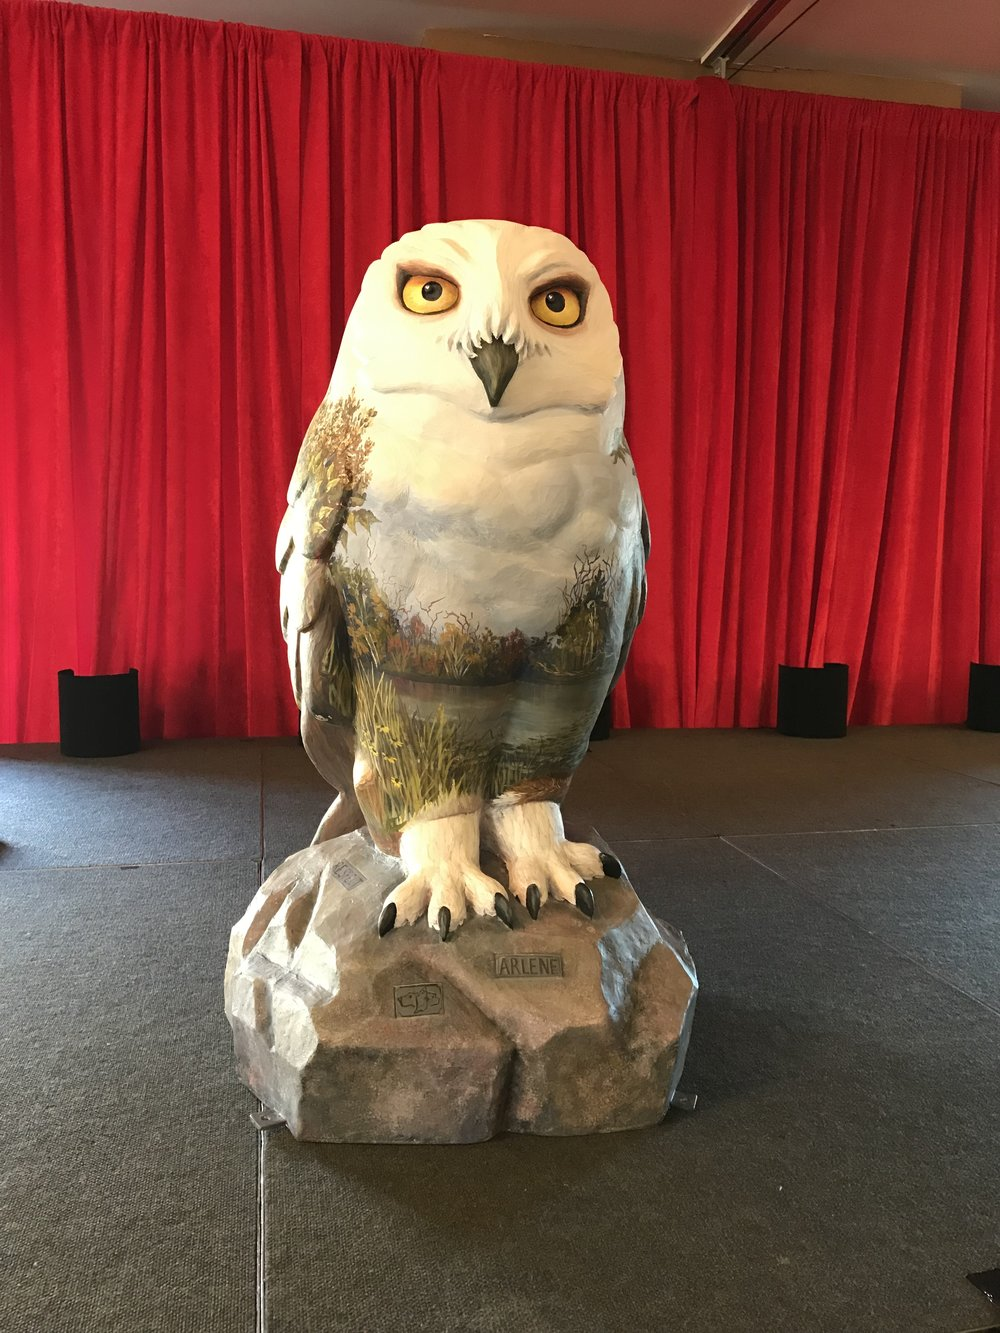 The Owl prototype was made possible through a generous donation from the Arlene Heward Estate. The sculpture has been beautifully and meticulously painted by artist Abbie Hoogeveen. it will be available for viewing at our Shelter in Munster throughout the Owl Public Art Tour from July 15-October.